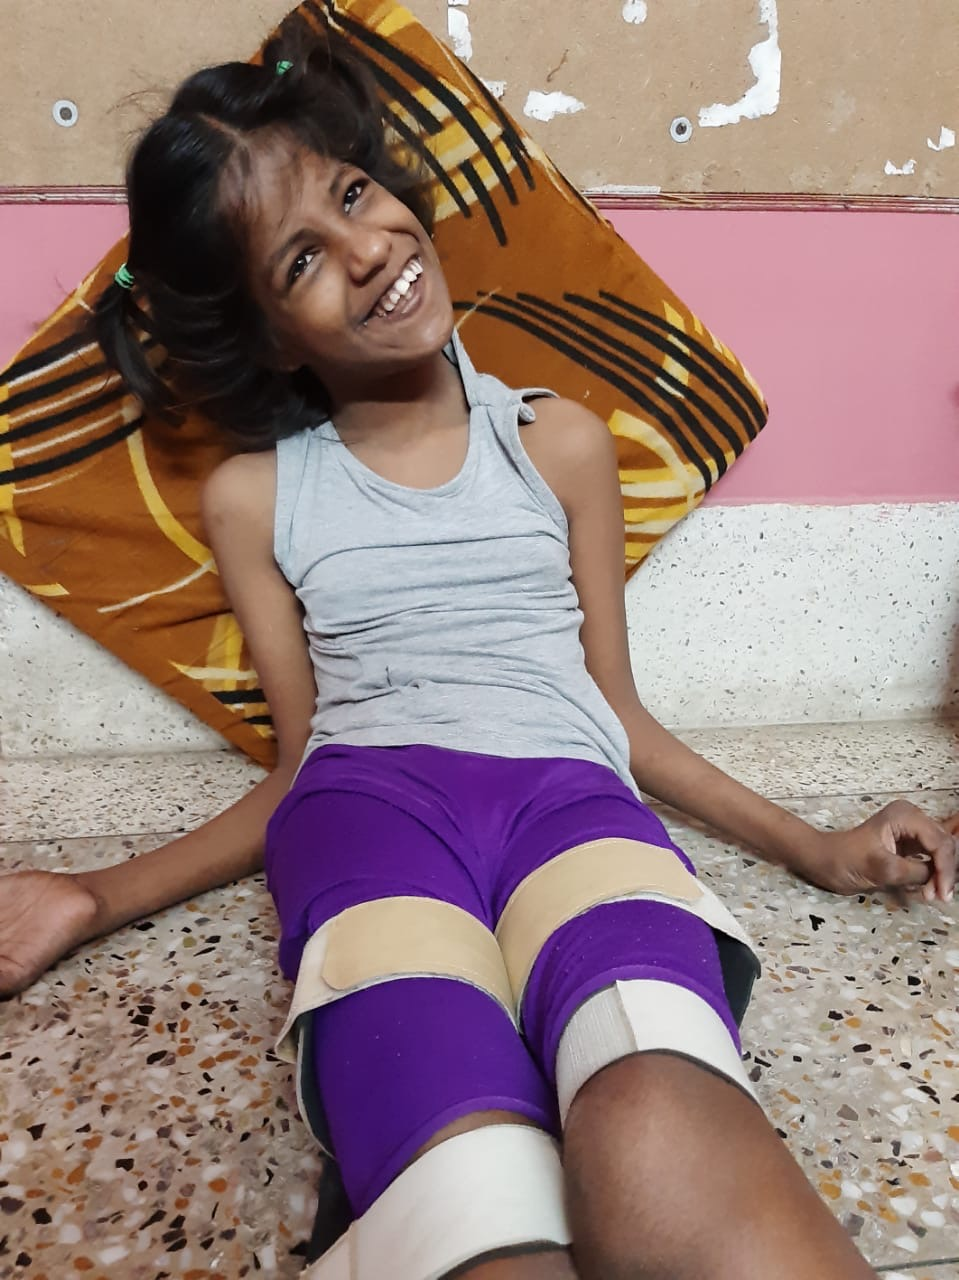 shuktara homes - Guria in her braces